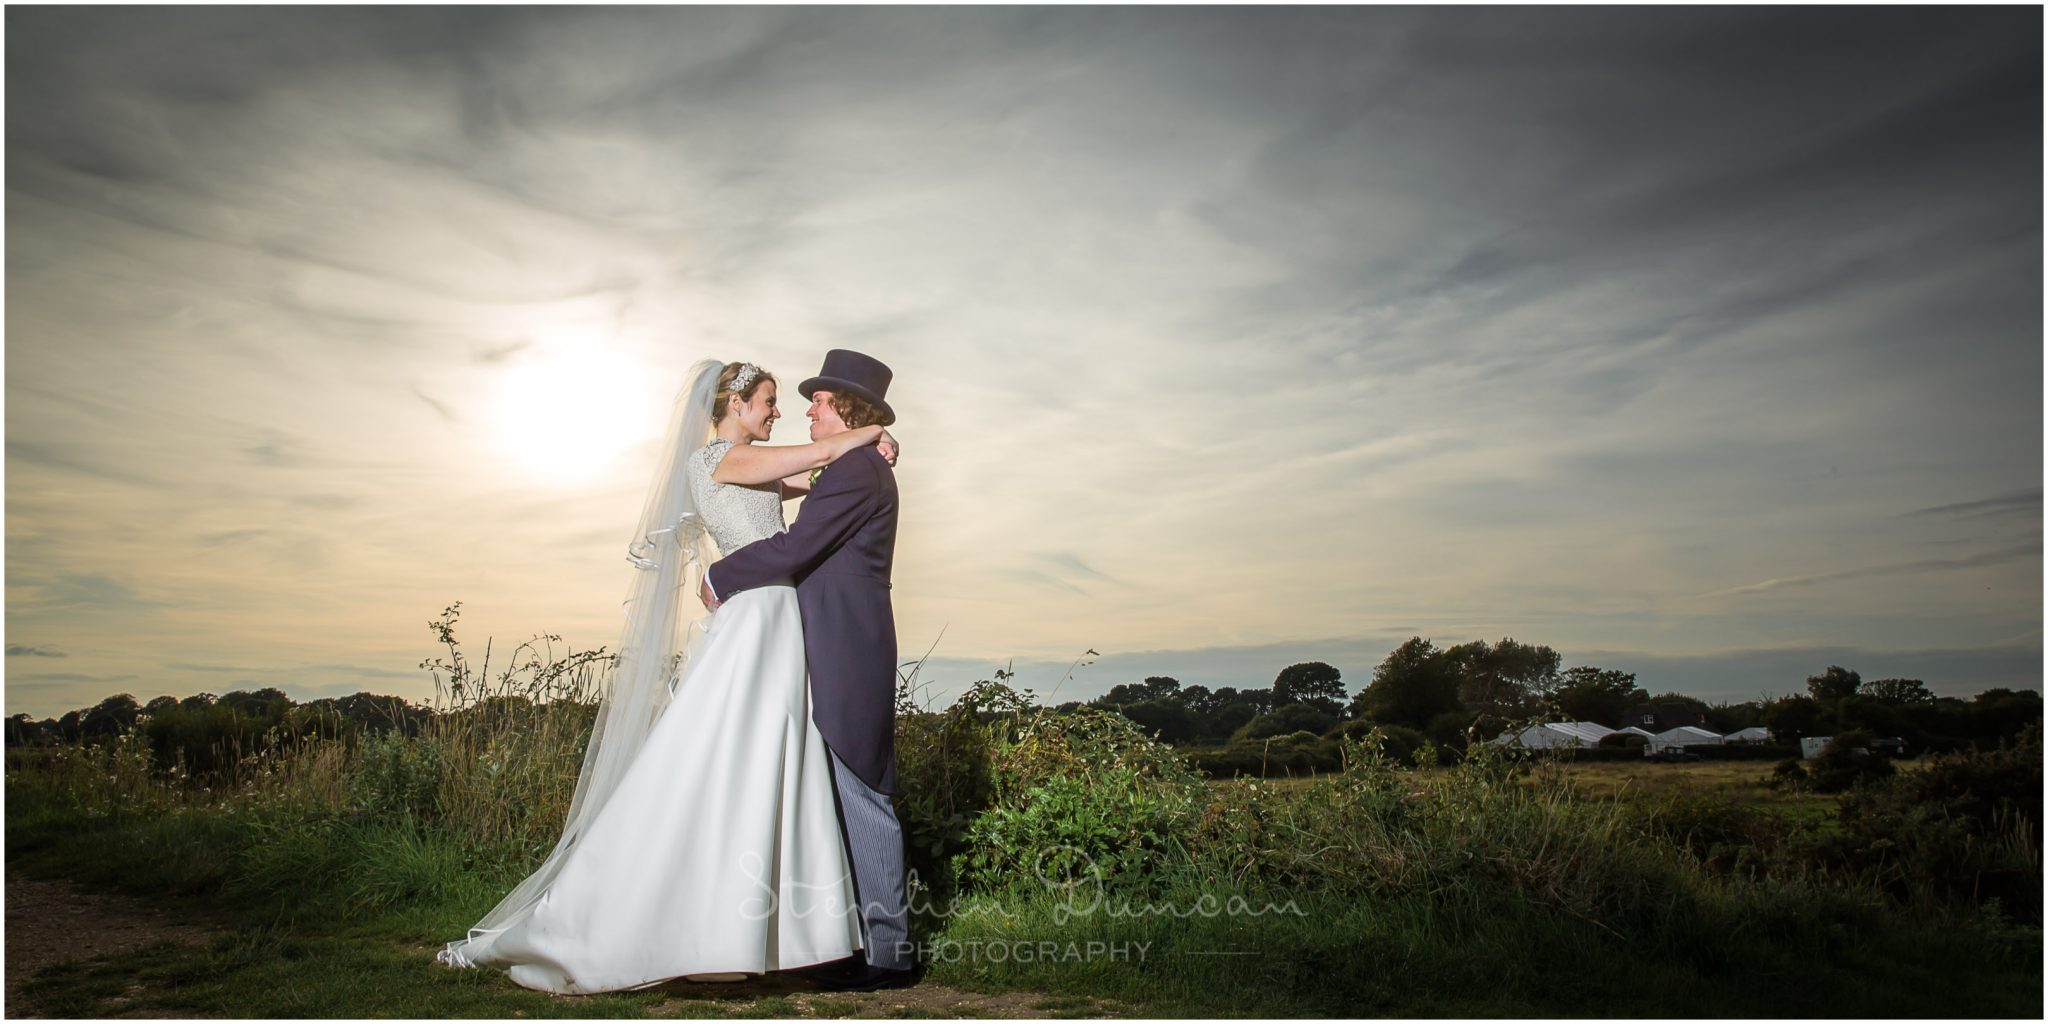 Lymington wedding photography colour portrait of couple